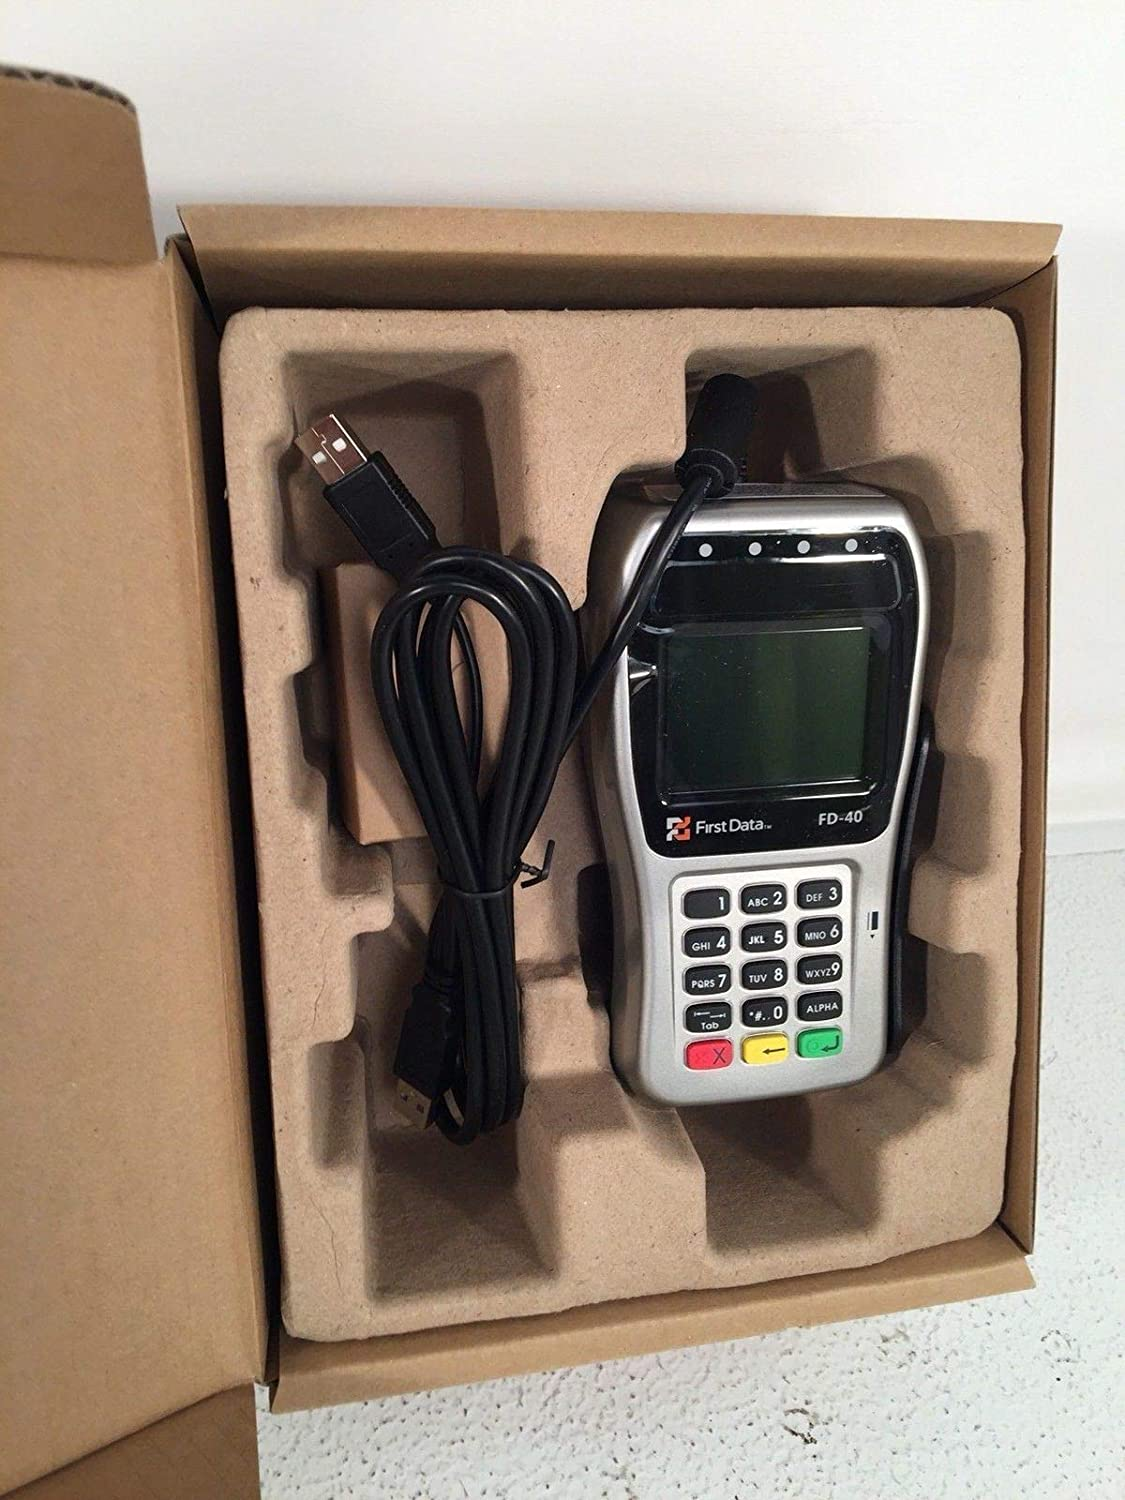 Amazon com : First Data FD-40 EMV PIN Pad Clover Station